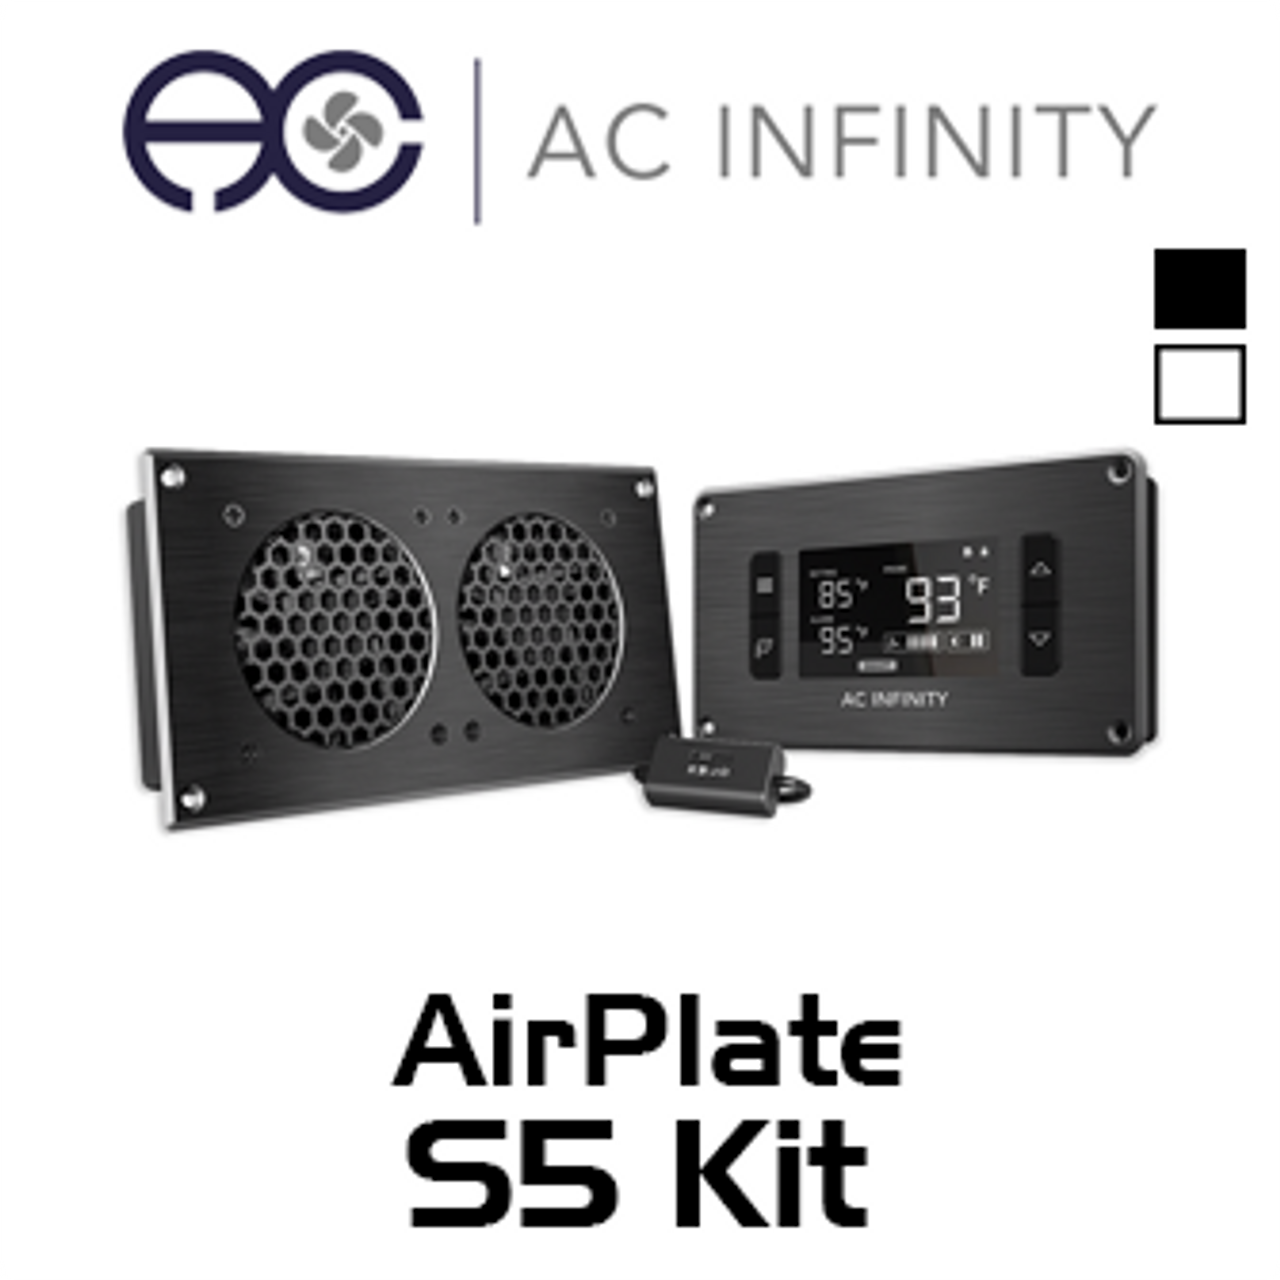 AC Infinity AP5TBKit Dual 80mm Airplate T5 AV Cabinet Cooling Fan Kit